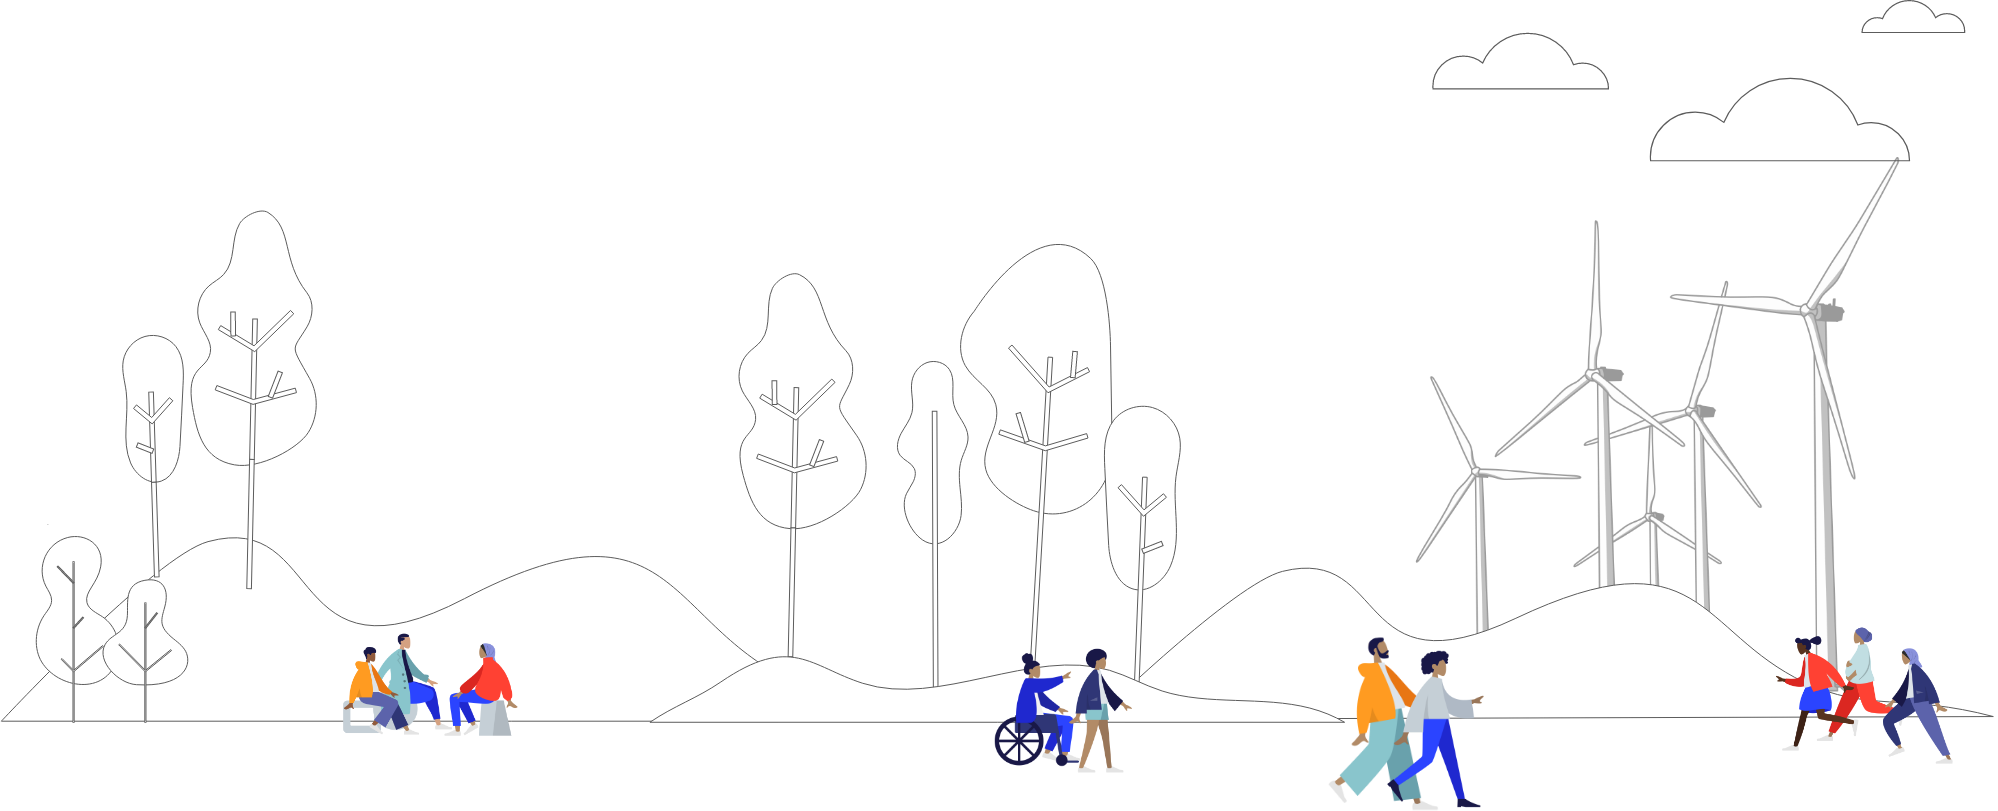 People enjoying the outdoors. Windmills in background. Illustration.